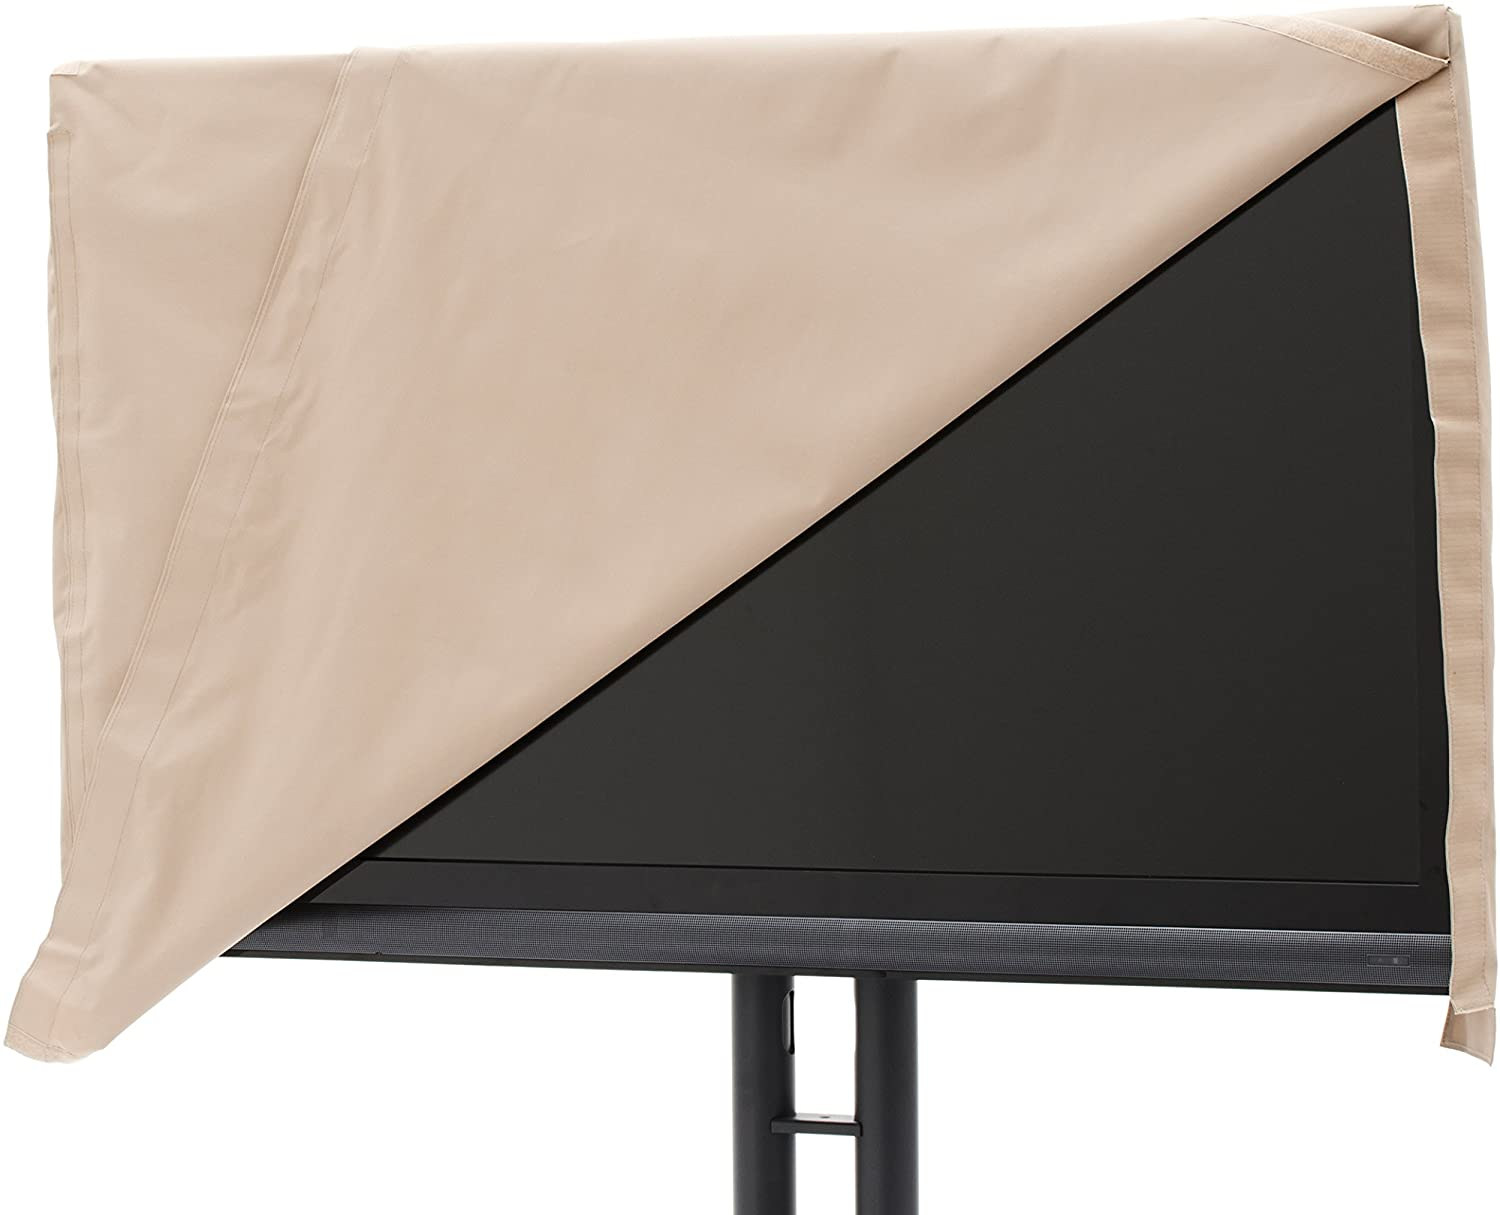 Covermates - Outdoor TV Cover - Fits 36 to 41 Inch TVs - Ultima - 300 Denier Fade Resistant Polyester - Full Coverage - Front Flip Top for Quick Viewing - 7 Year Warranty - Water Resistant - Tan